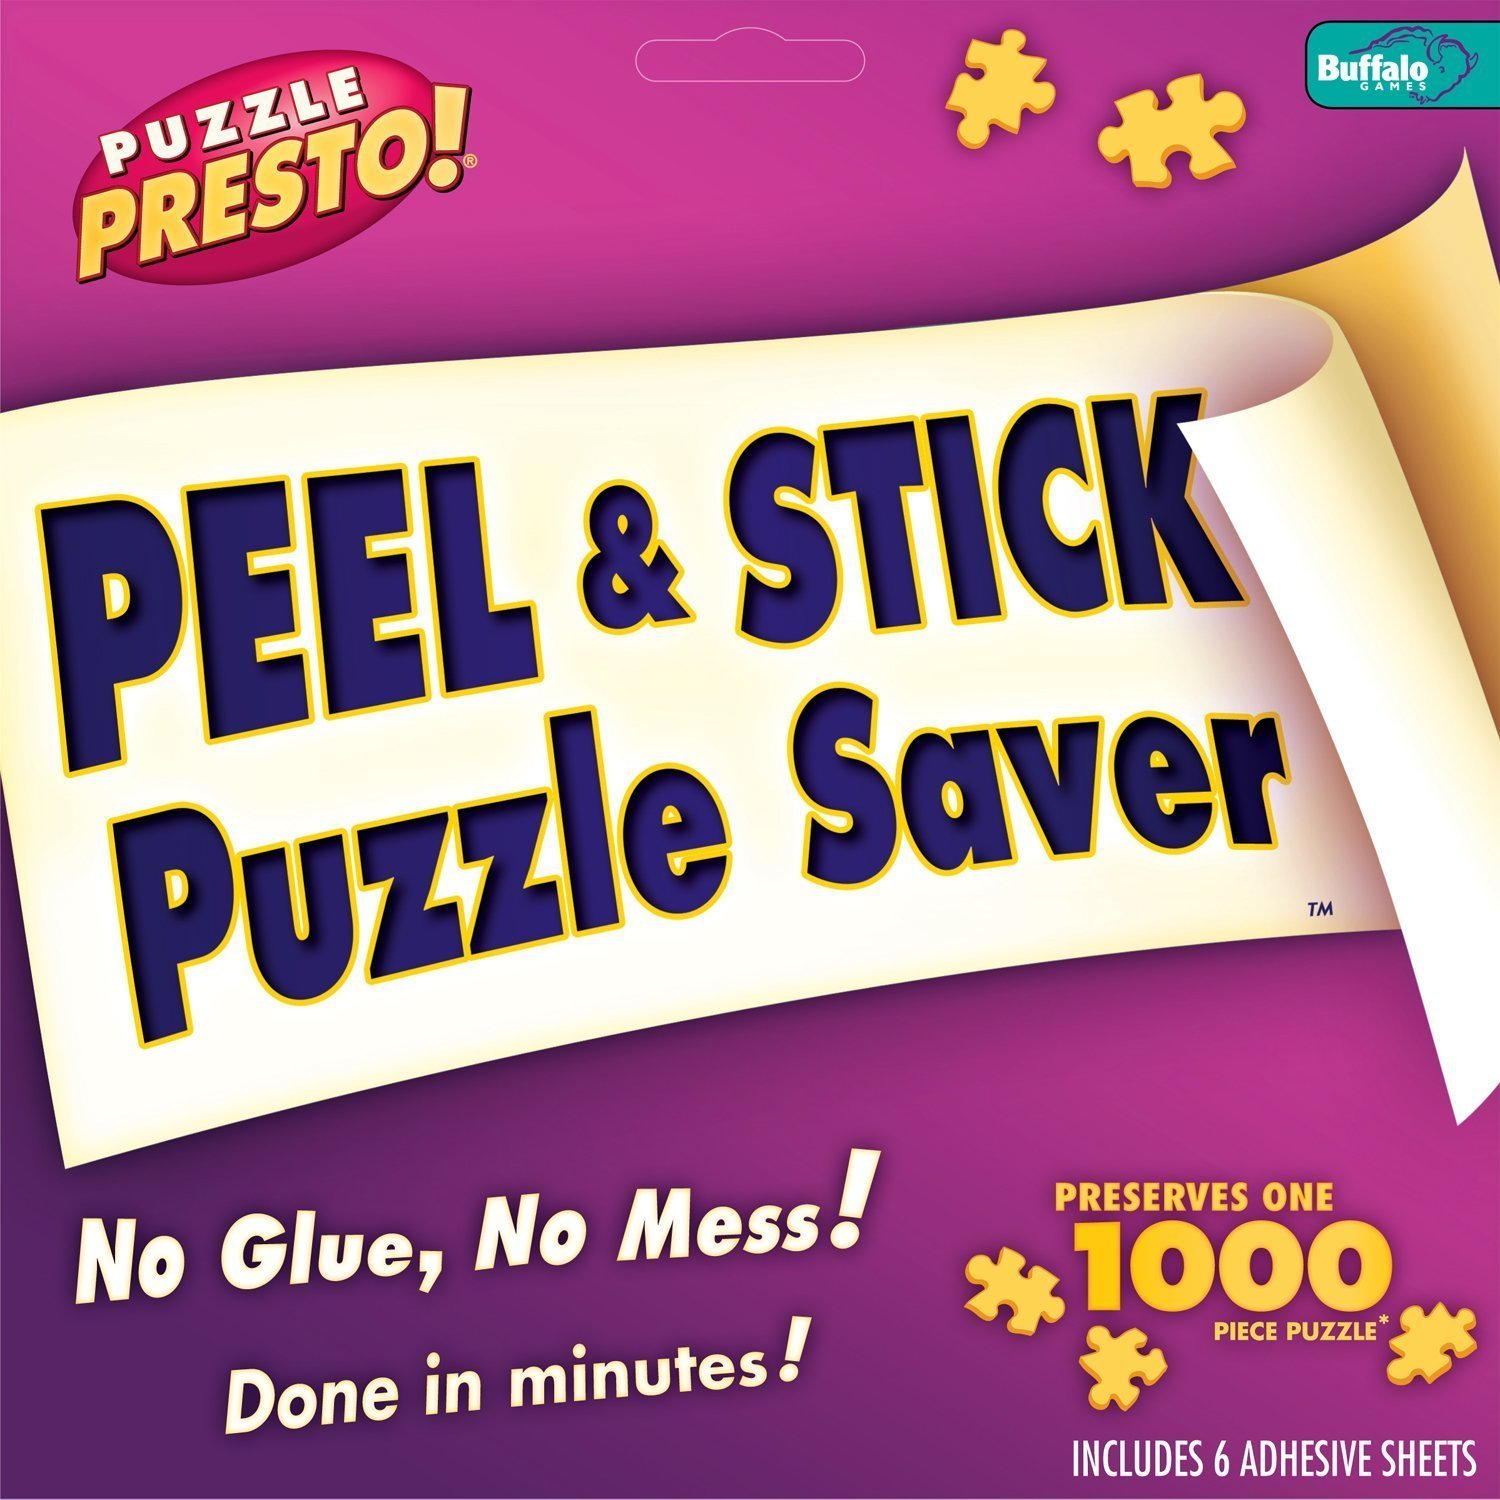 Puzzle Presto Peel & Stick Puzzle Saver, 6 Sheets with Free Storage Bag